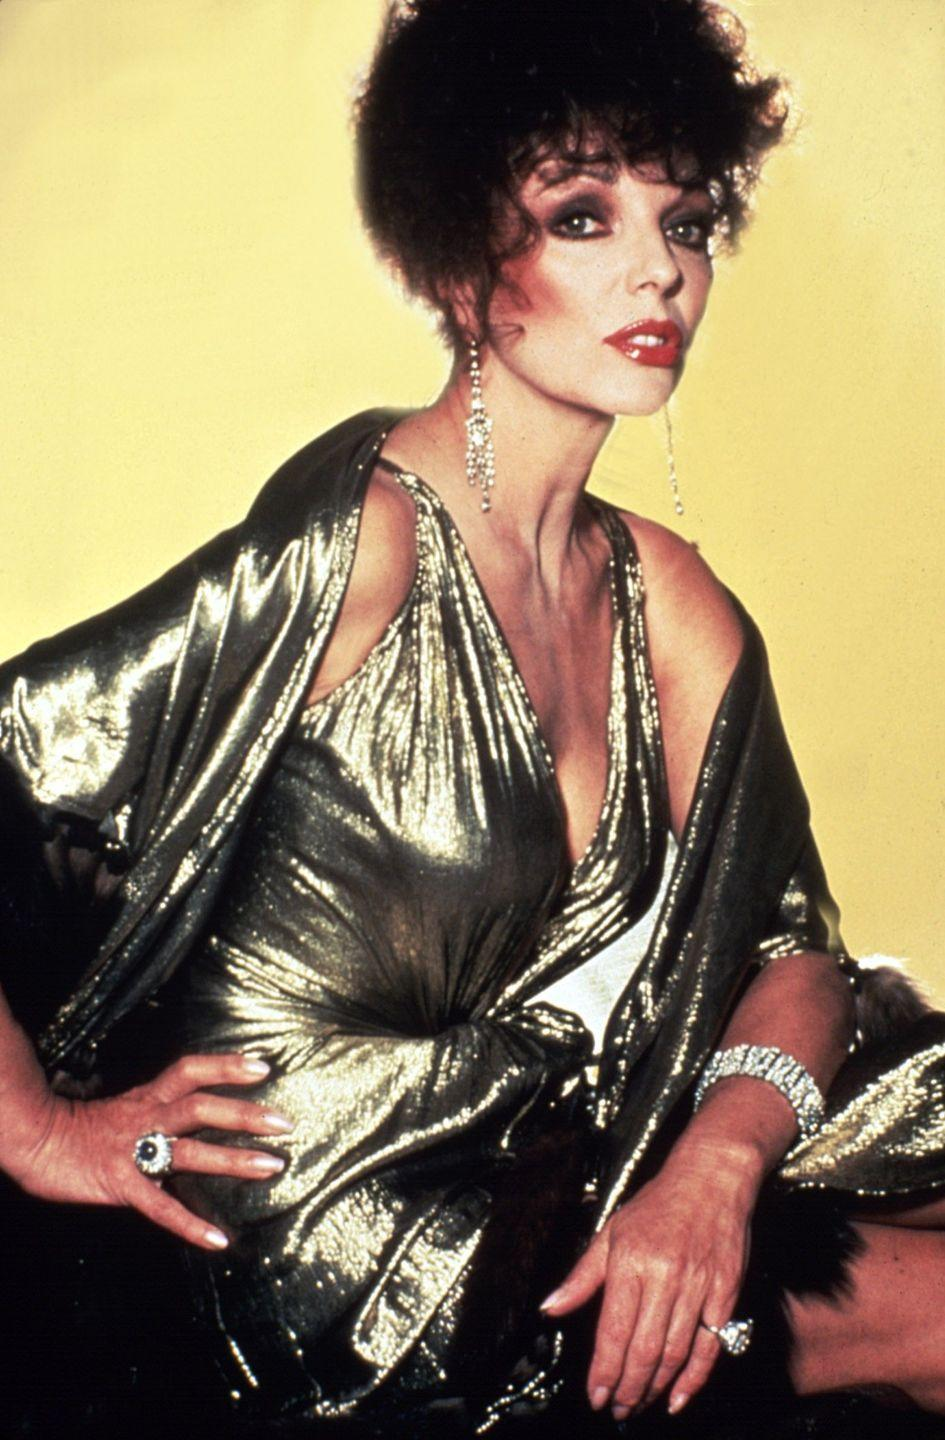 <p>The actress' iconic Alexis Carrington character on <em>Dynasty</em> ushered in a new era of glitz and glamour during the 80s.</p>